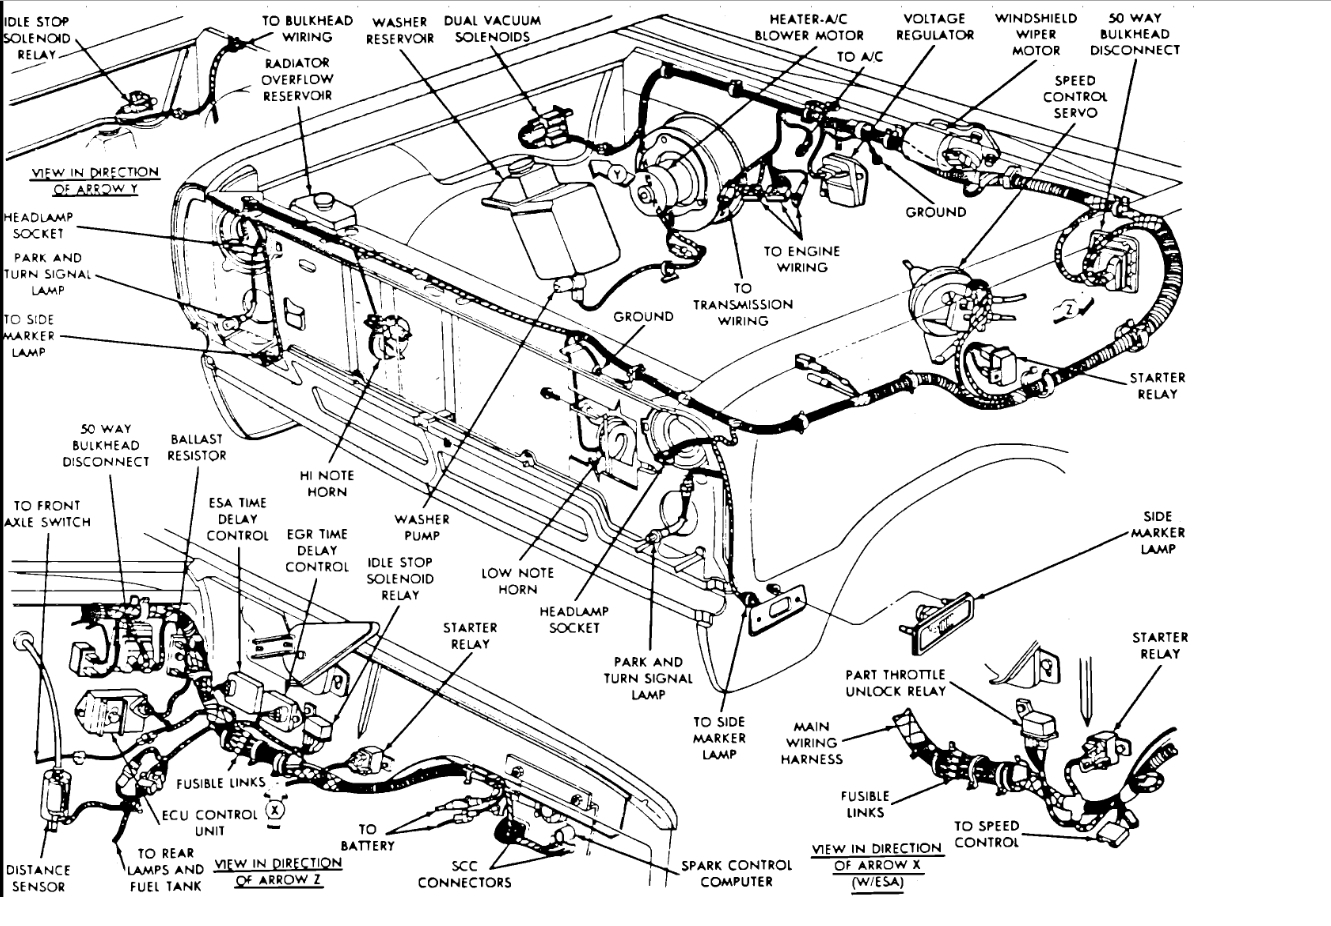 [DIAGRAM] 1990 Dodge B150 Wiring Diagram FULL Version HD